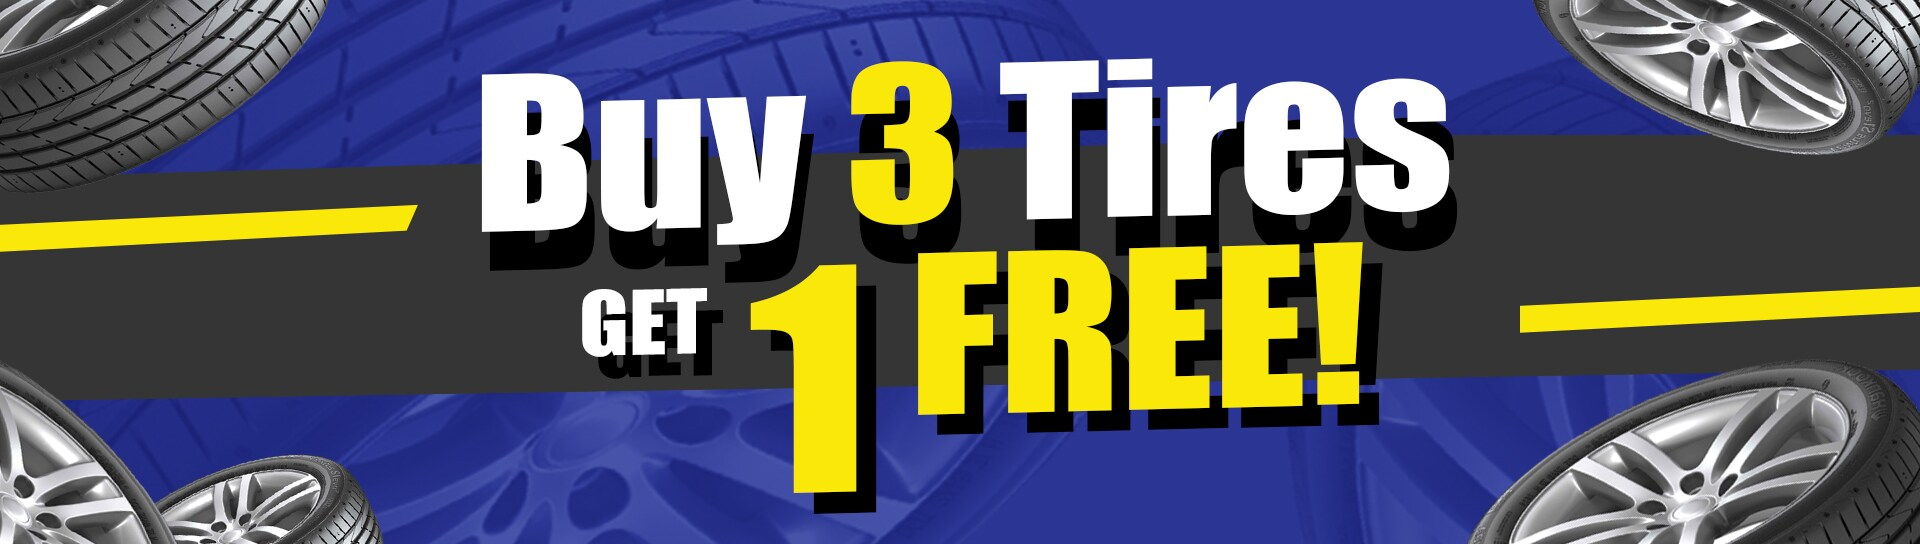 Buy 3 Tires Get 1 Free Dahl Subaru